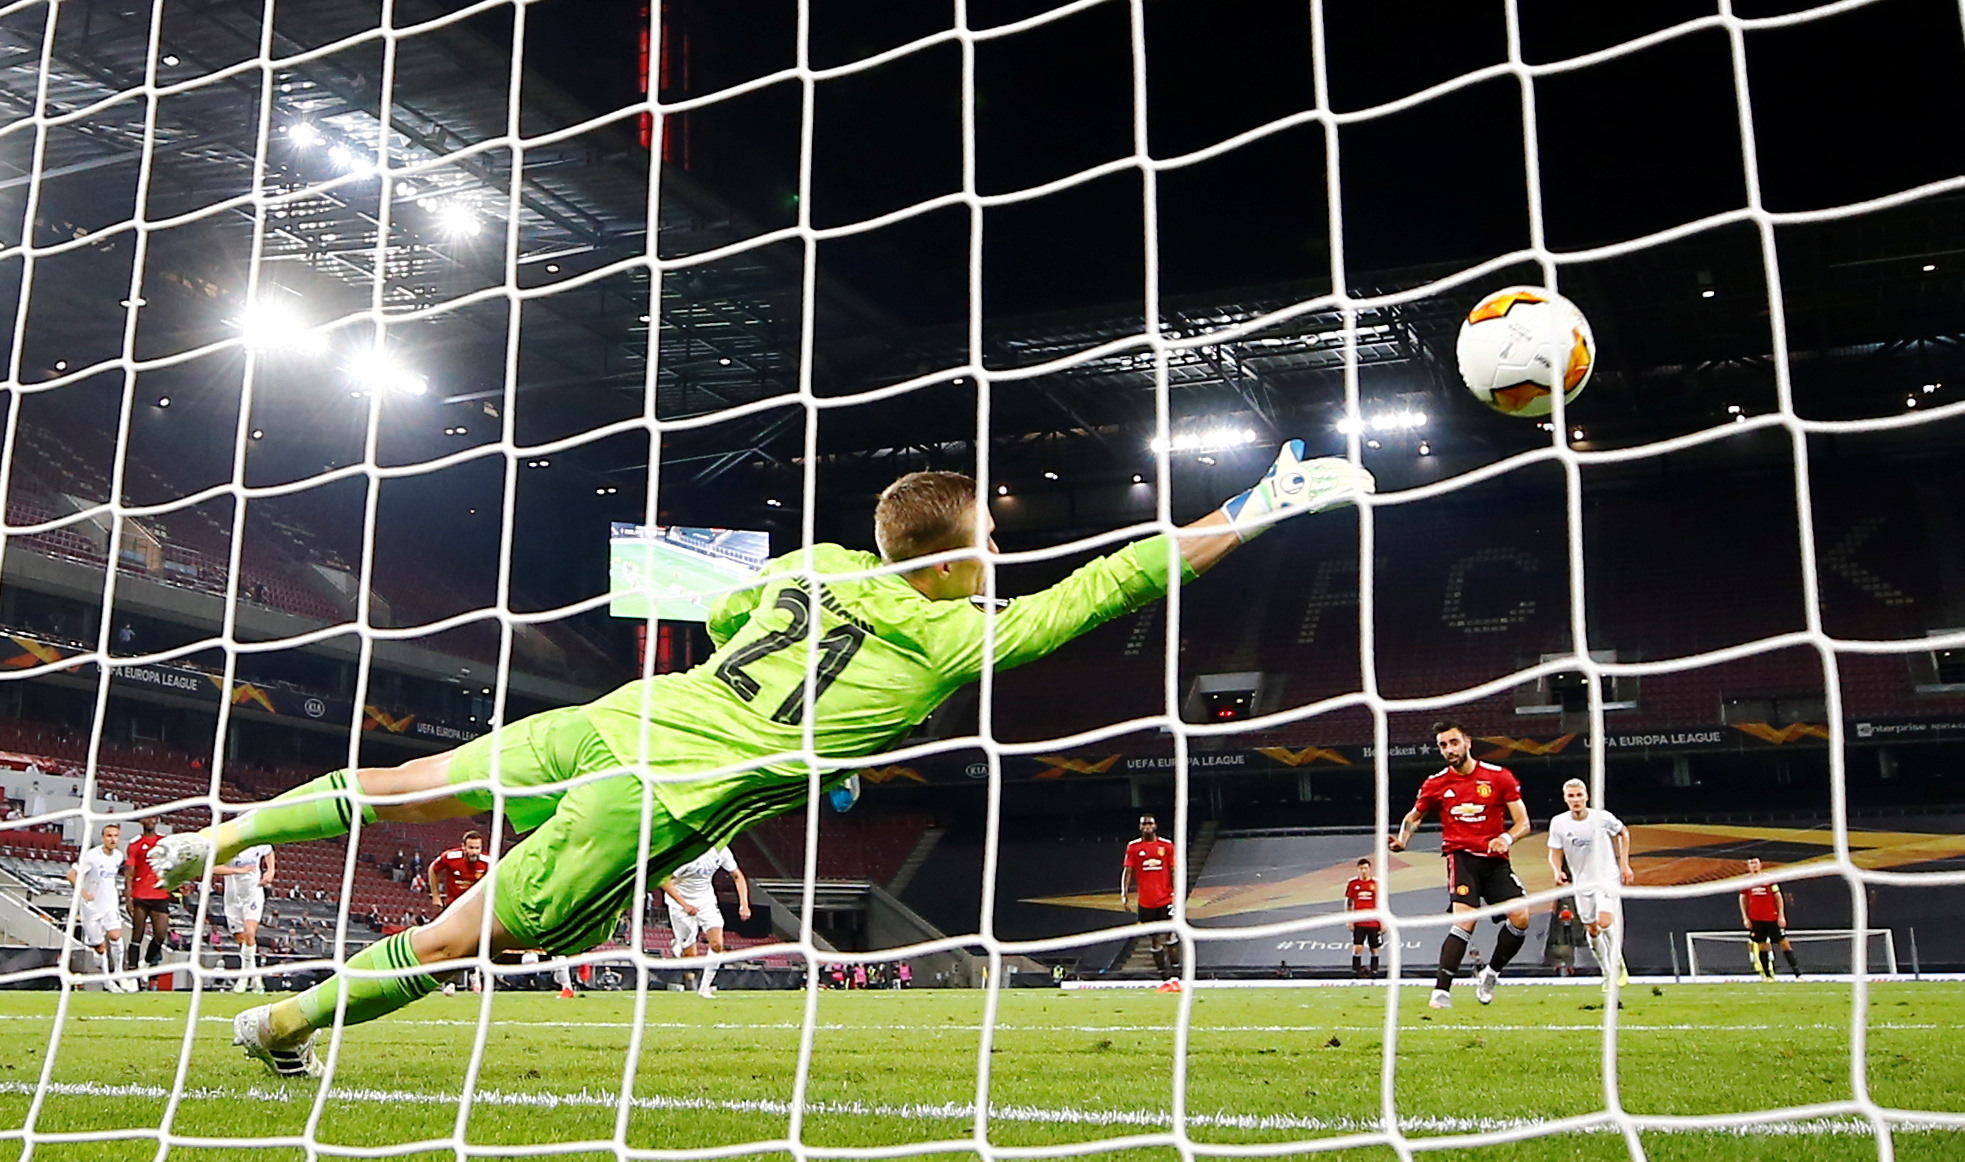 Manchester United's Bruno Fernandes scores their first goal from the penalty spot during the Europa League Quarter Final match between Manchester United and FC Copenhagen, at RheinEnergieStadion, in Cologne, Germany, on  August 10, 2020, as play resumes behind closed doors following the outbreak of the coronavirus disease (COVID-19). Photo: Pool via Reuters